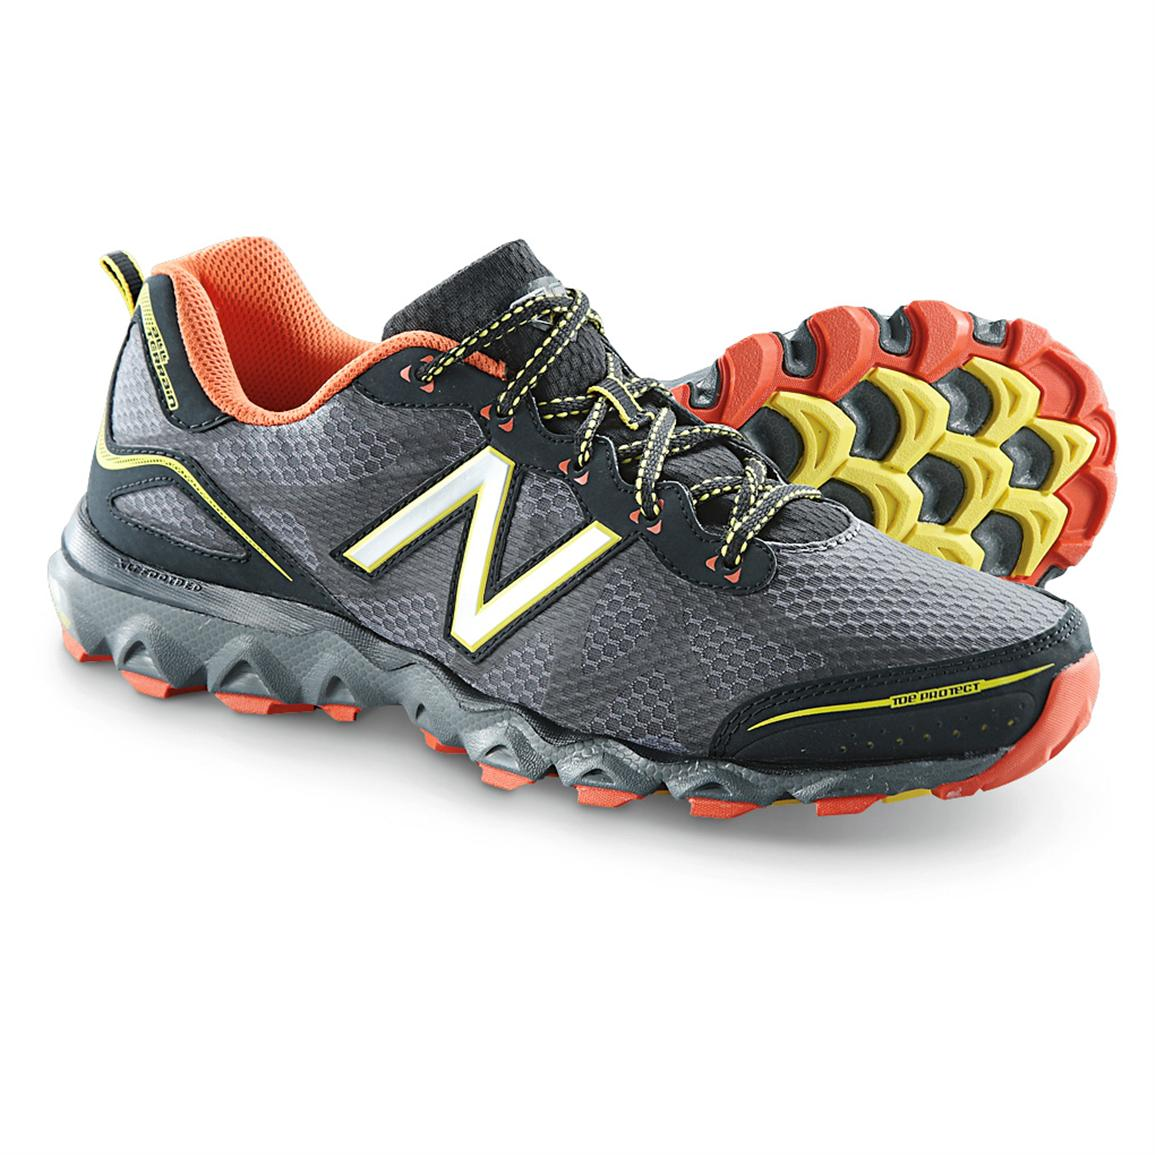 aced61e8d8960d Men's New Balance 710v2 Trail Running Shoes - 591302, Running Shoes ...